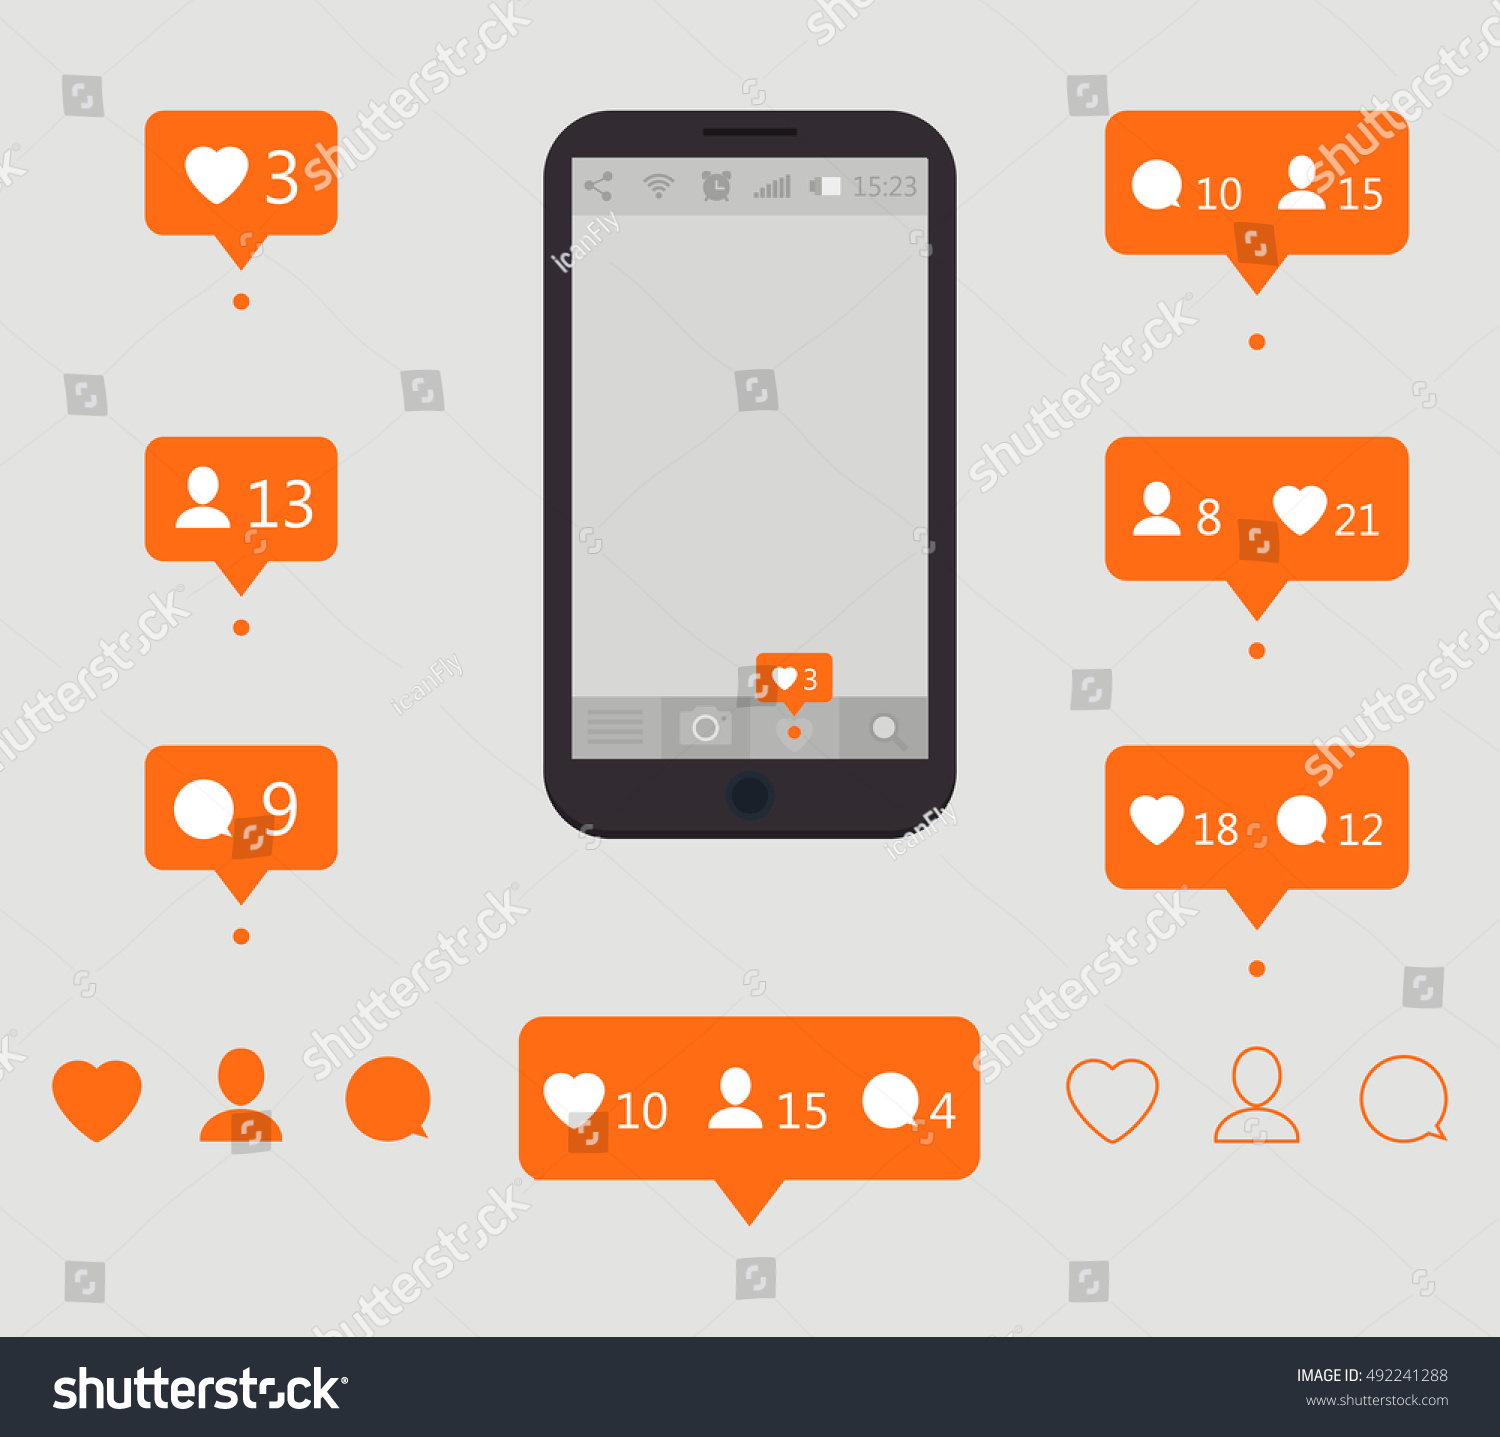 Like icons counter notification like follower stock vector counter notification like follower comment icons icon for social biocorpaavc Images